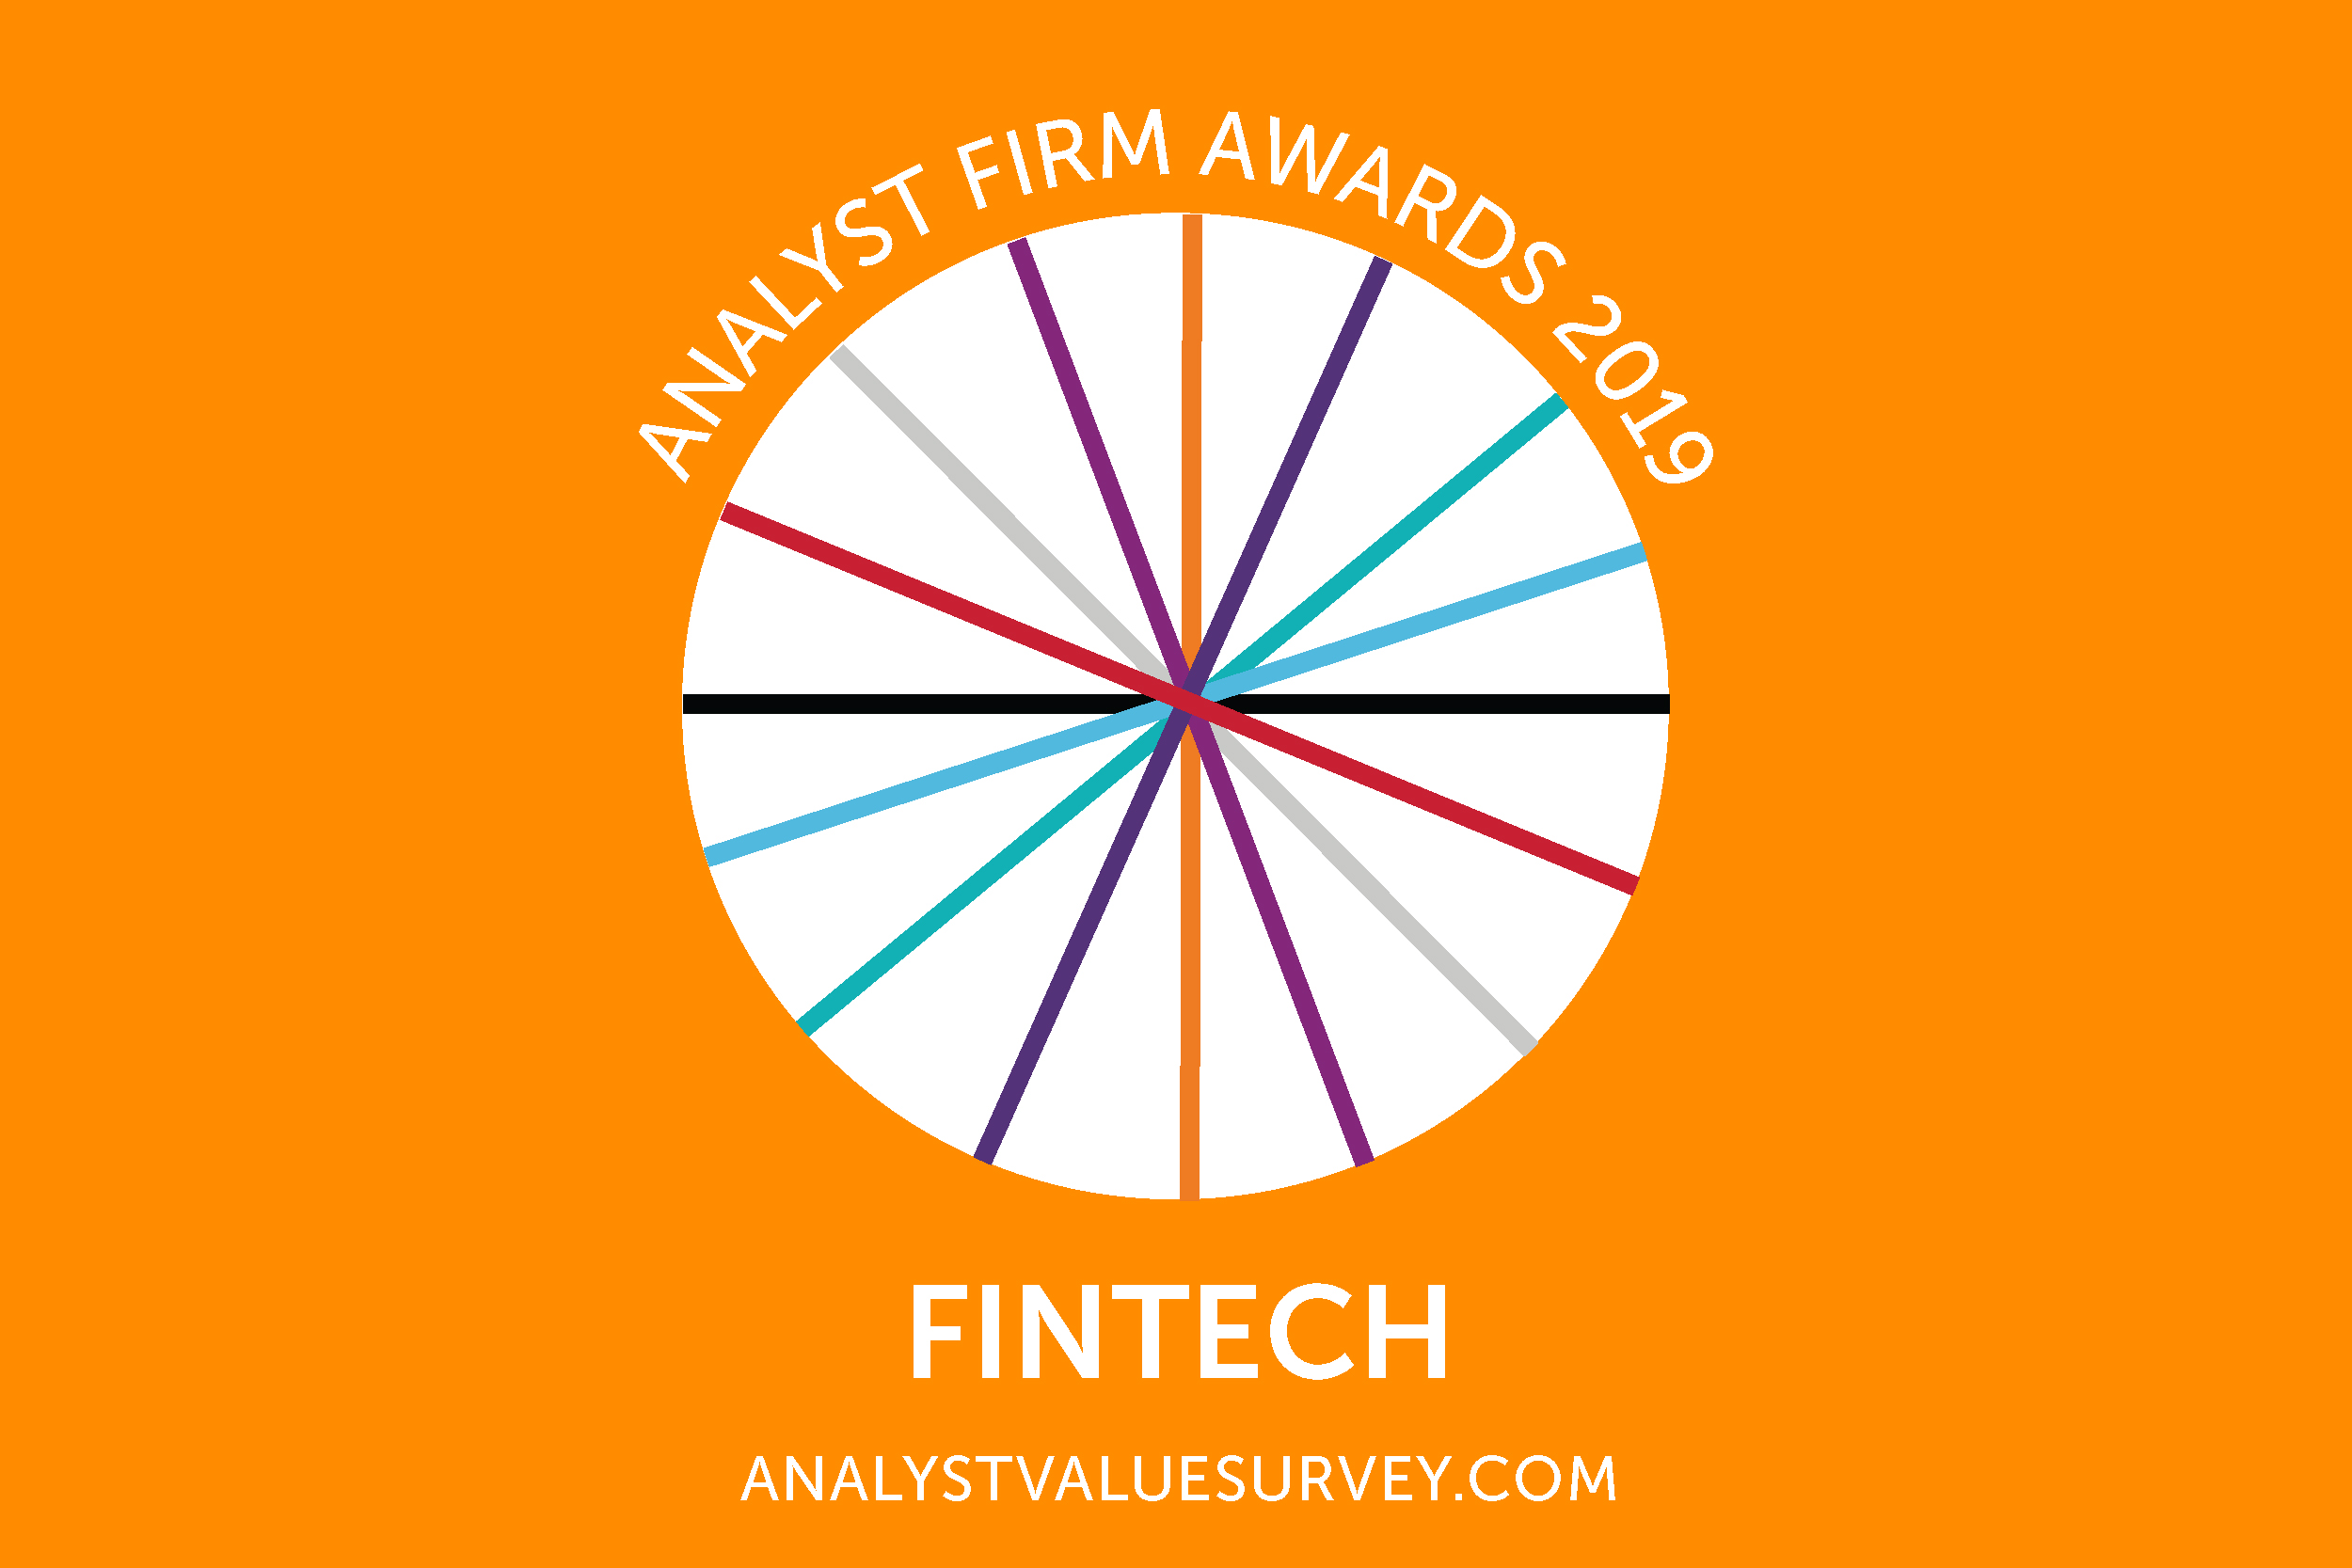 Fintech Analyst Firm Awards